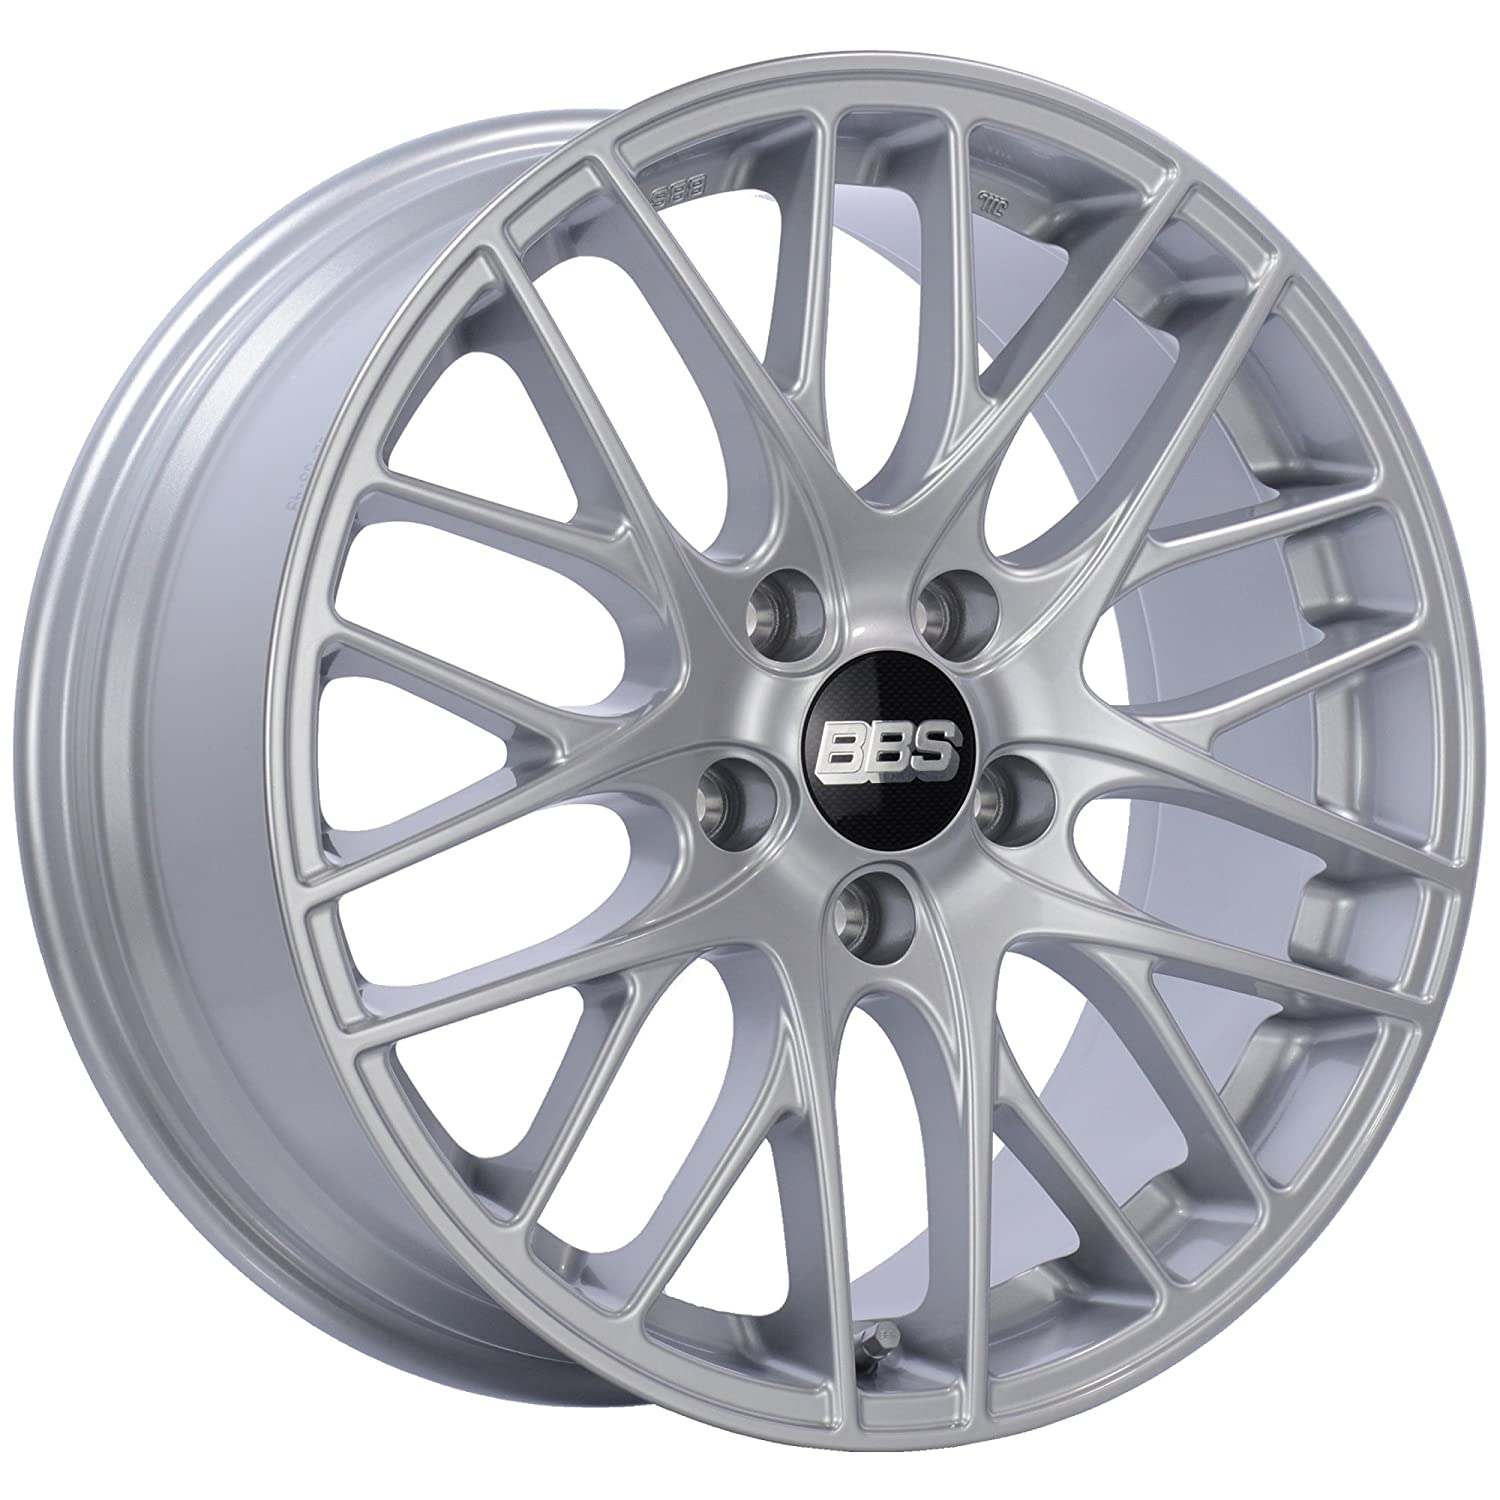 Amazon com: BBS CS-5 Silver Wheel with Painted Finish and